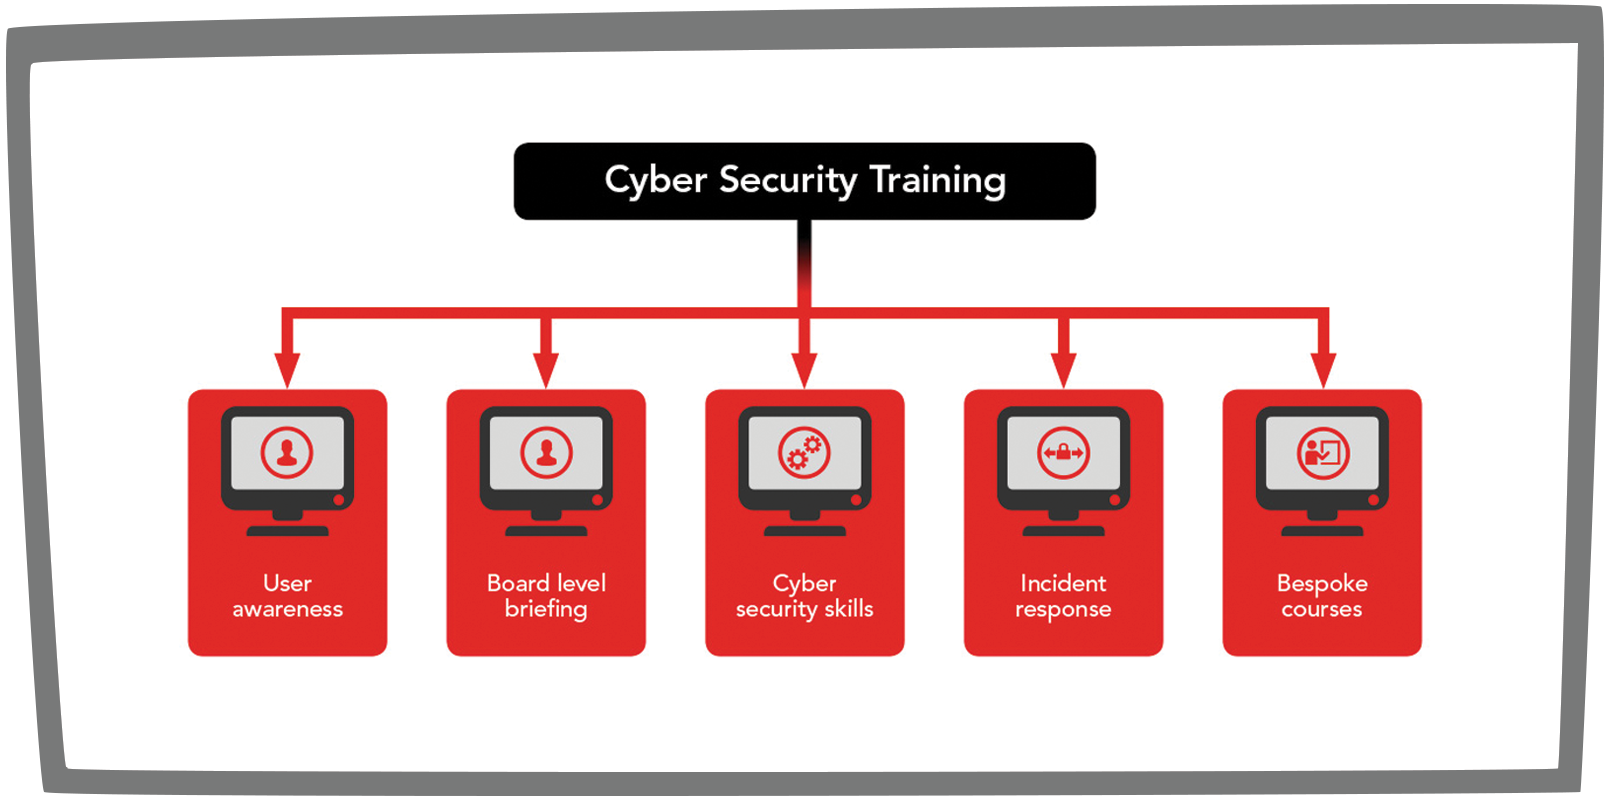 Cyber Security Training graphic